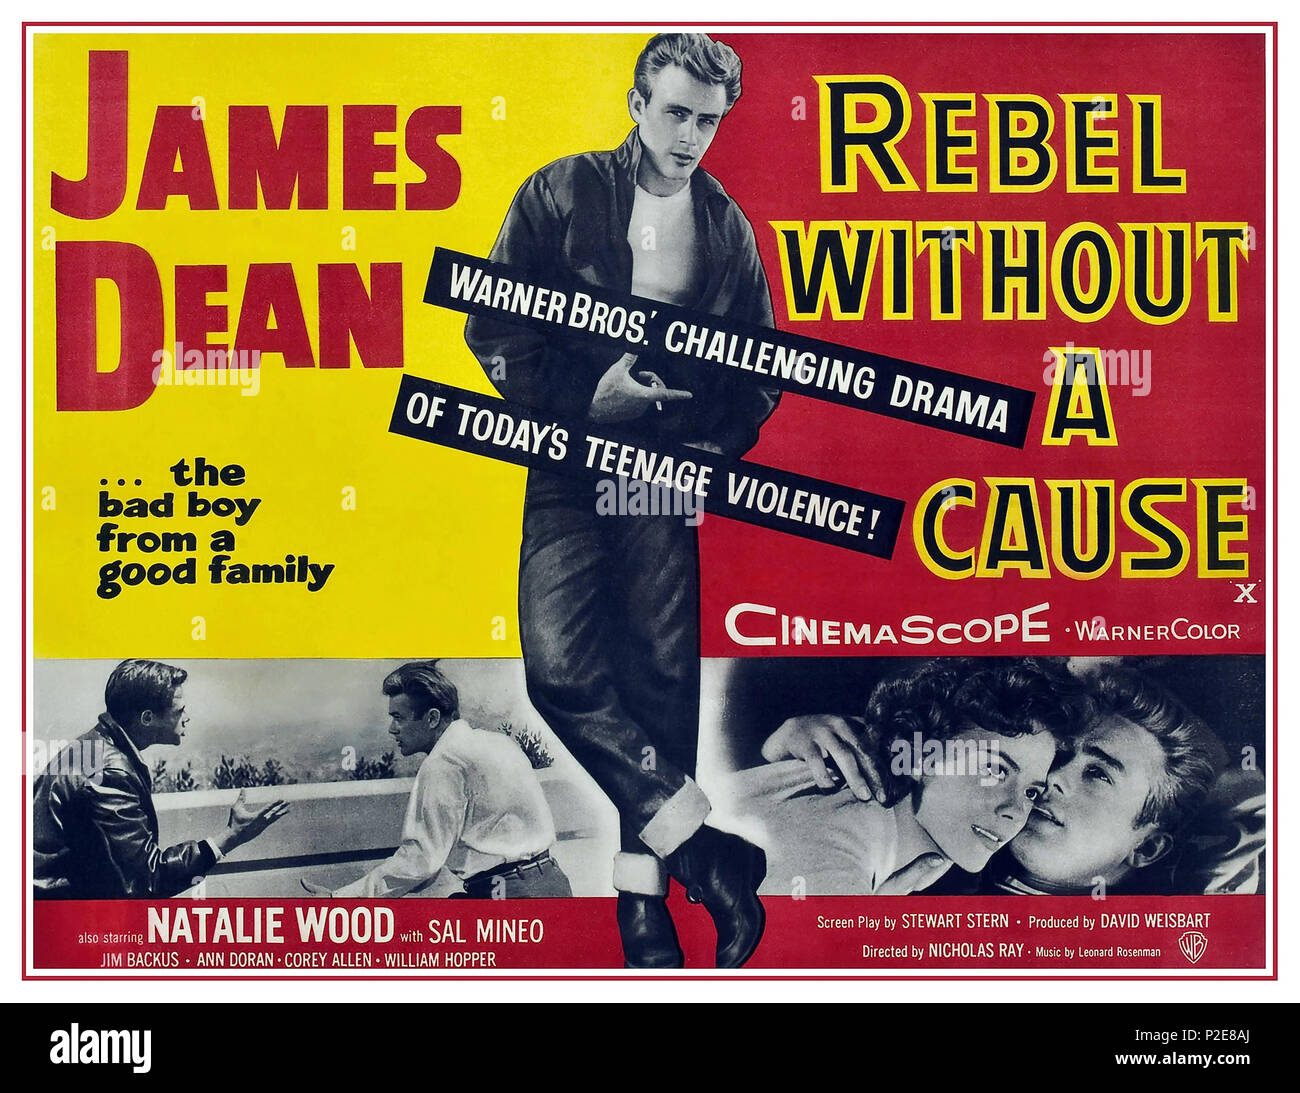 1950's Vintage Movie Film Poster 'Rebel Without a Cause' (1955) starring James Dean Natalie Wood Sal Mineo... - Stock Image